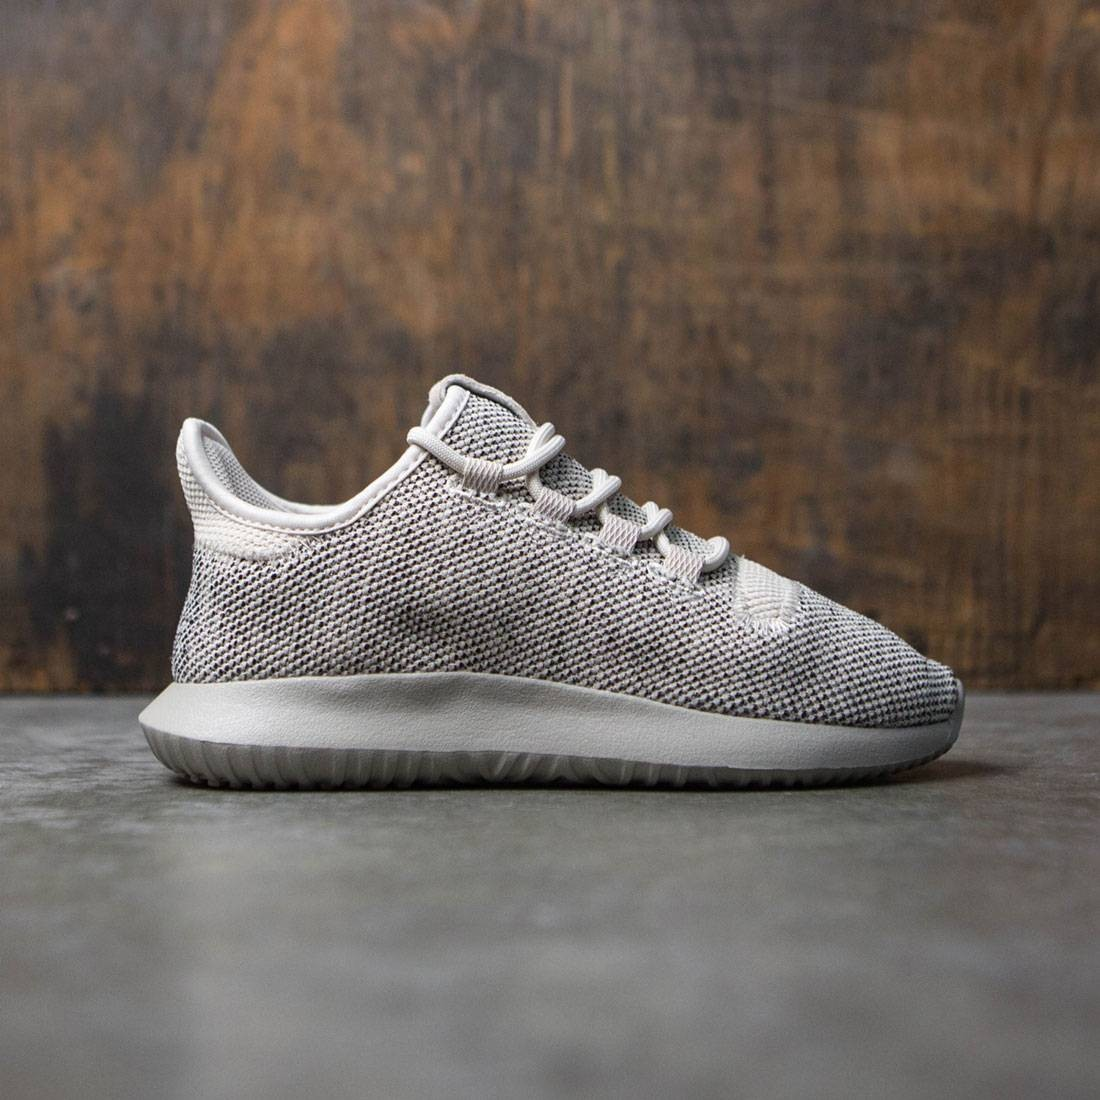 Adidas Big Kids Tubular Shadow J (brown / clear brown / light brown / core black)